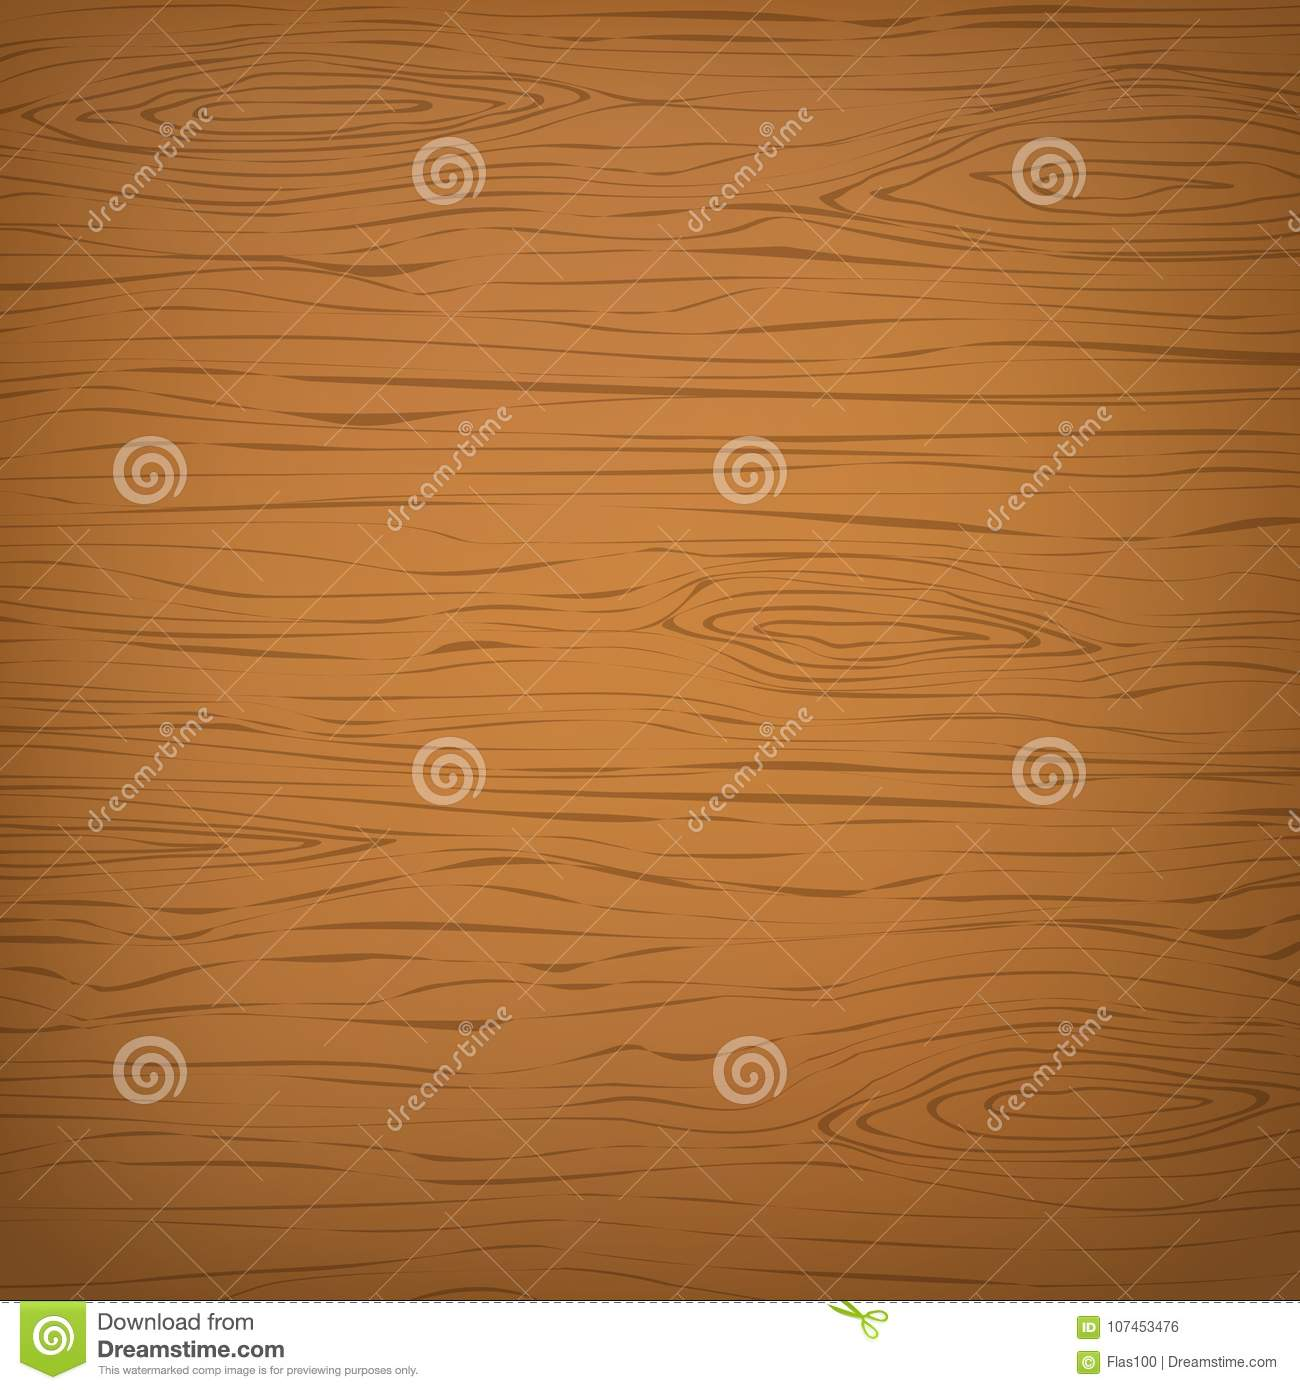 Orange square wooden cutting, chopping board, table or floor surface. Wood texture